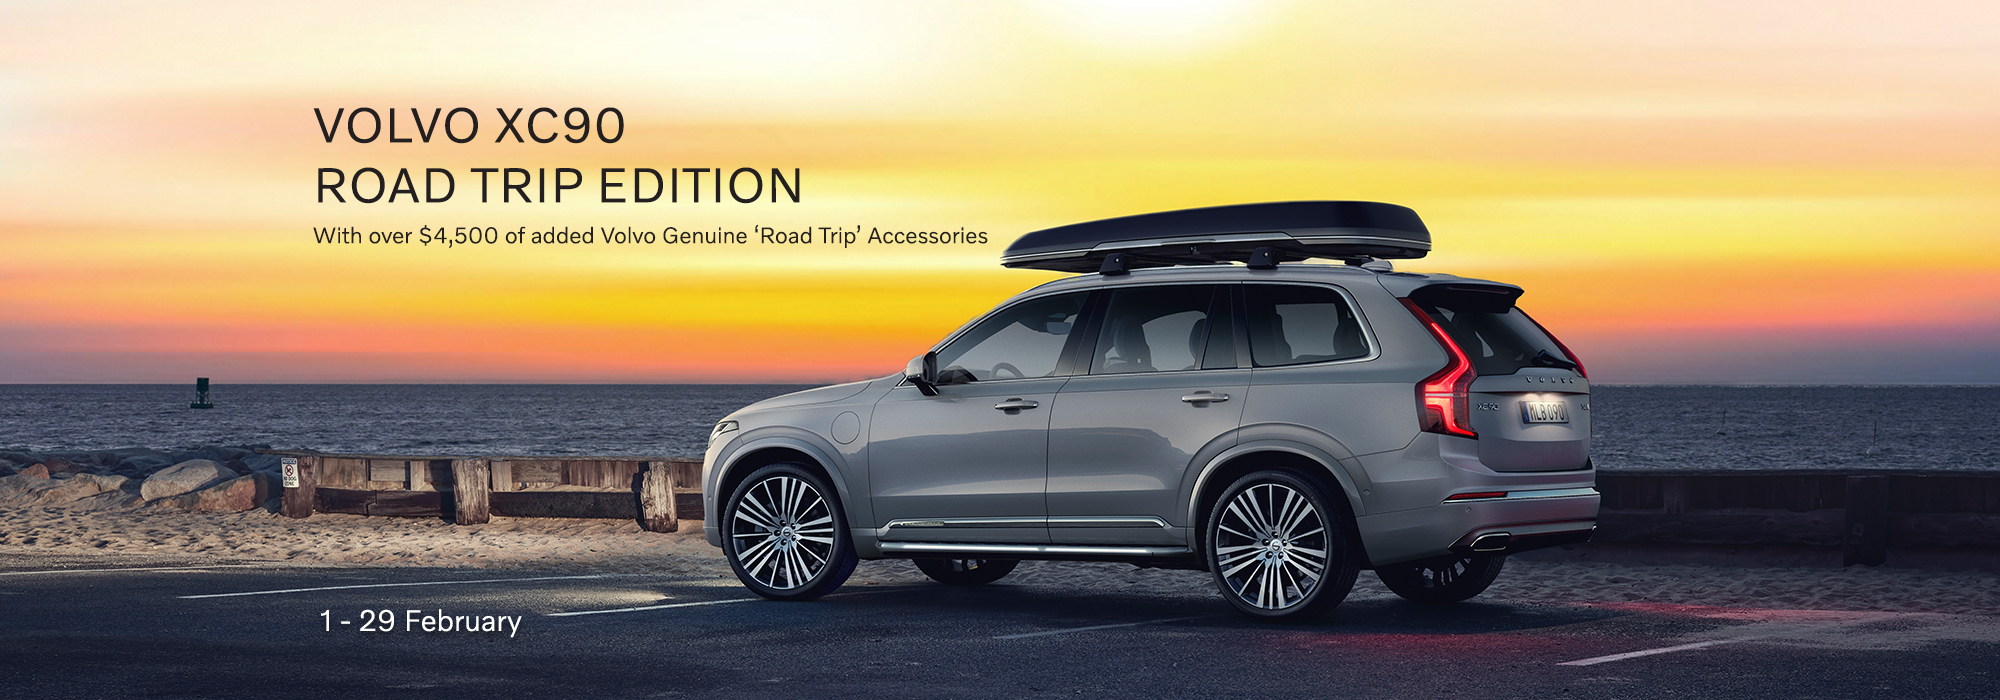 Exceptional value at Volvo Cars Rushcutters Bay